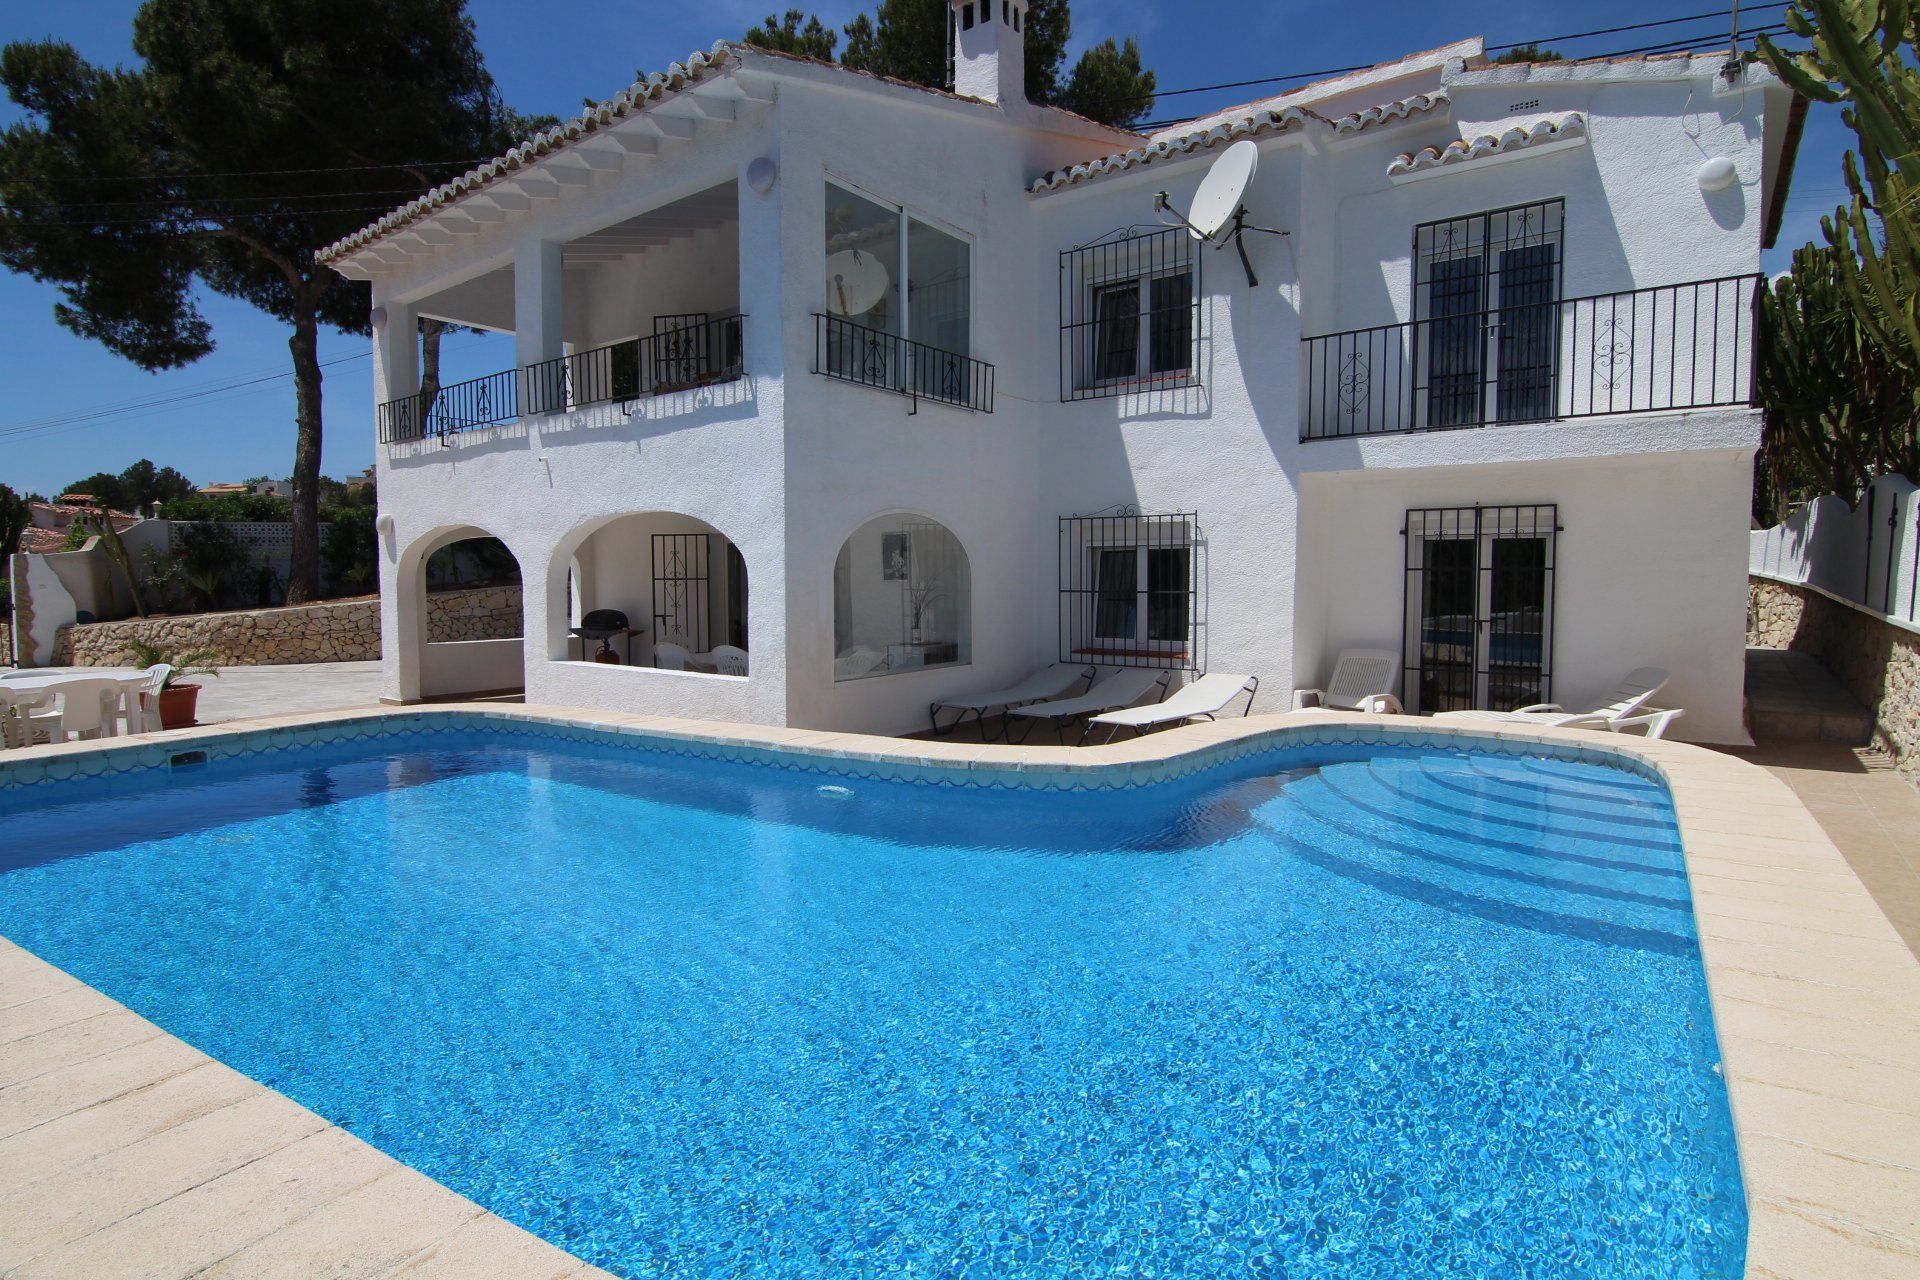 Villa with 2 identical floors close to beach and town